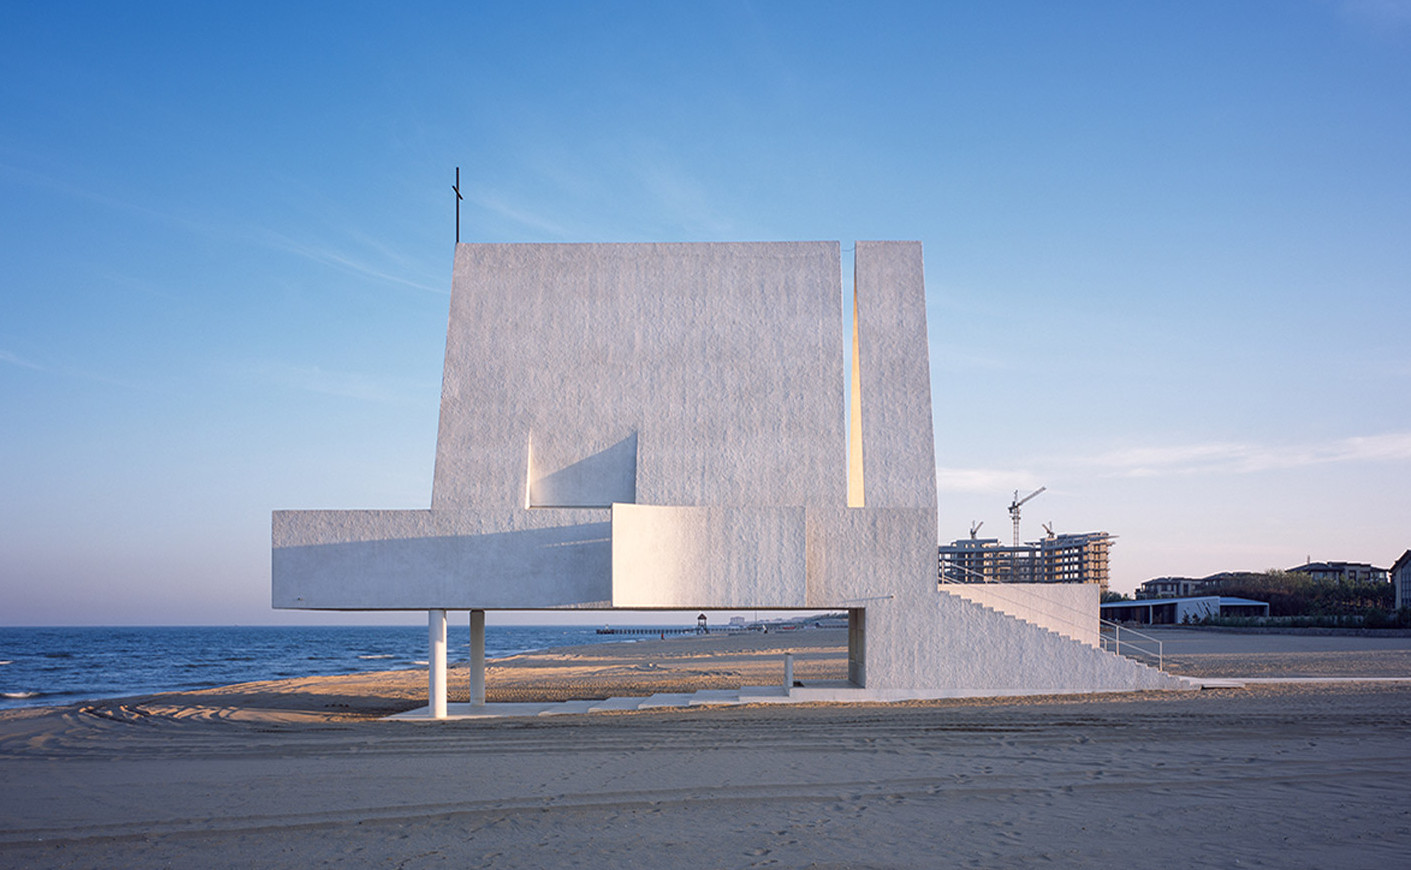 seashore-chapel-beidaihe-new-district-china-beijing-vector-architects-religion-beach-church-light_dezeen_1568_3